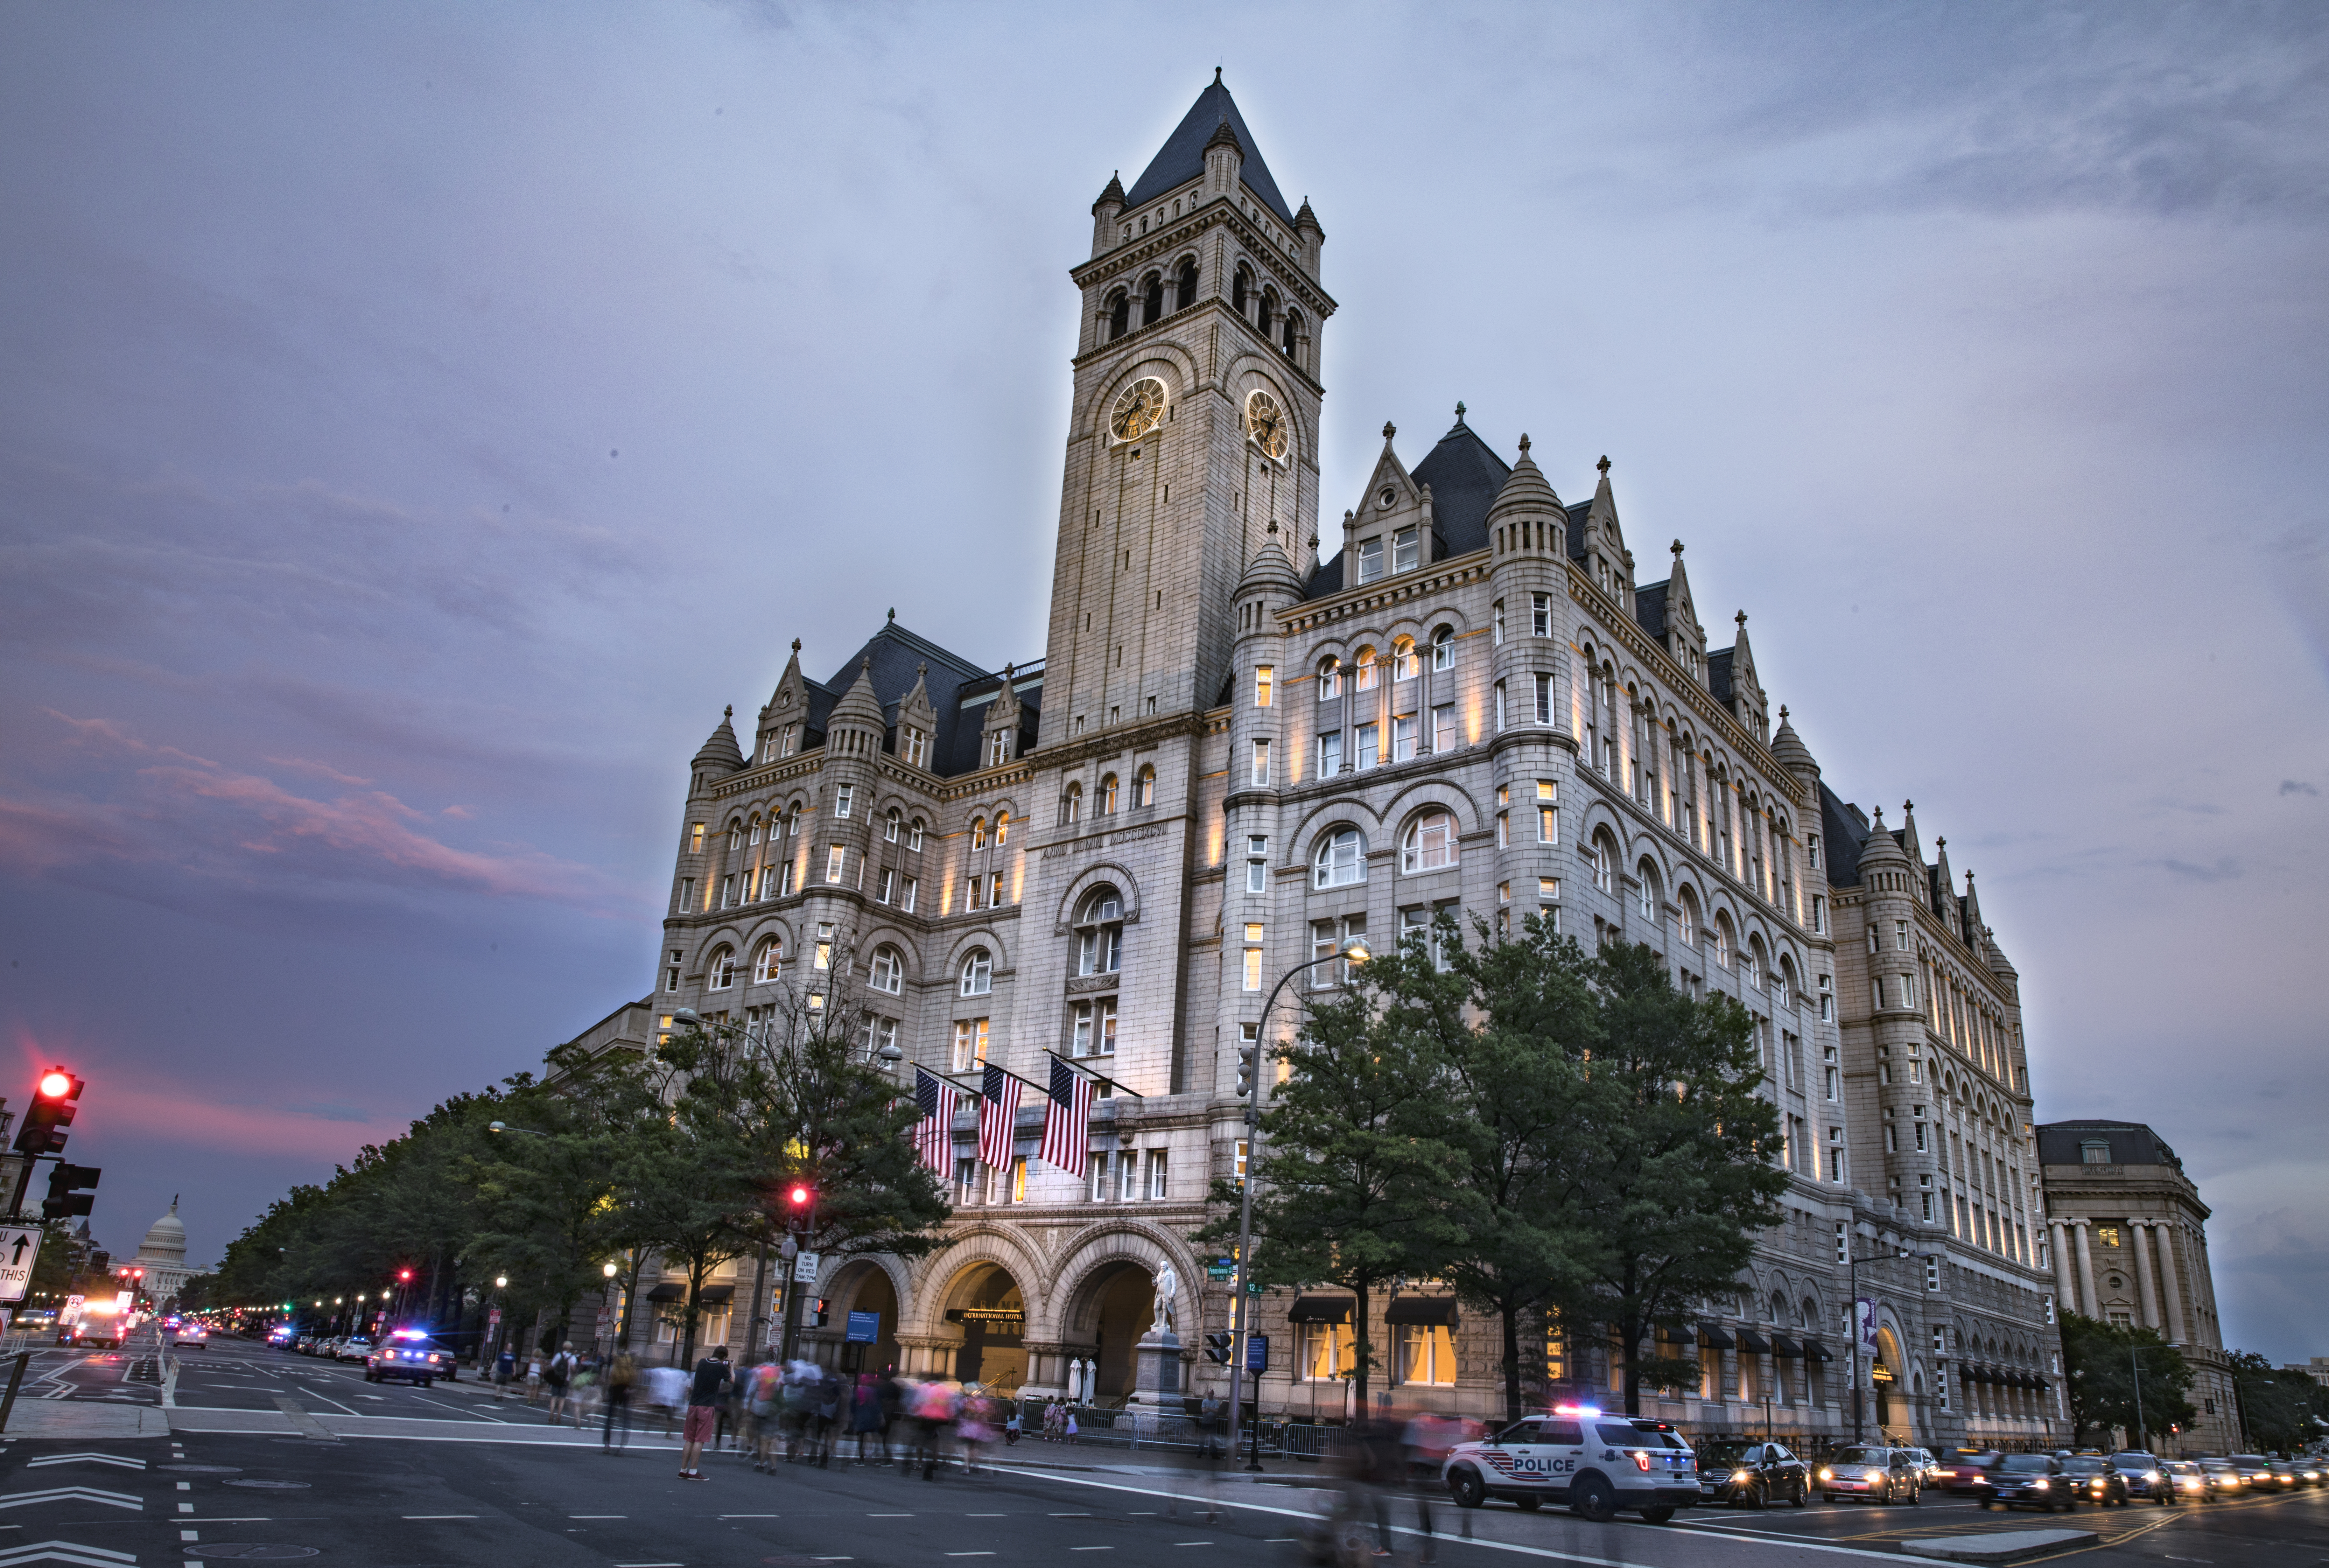 Saudi-funded lobbyist paid for 500 rooms at Trump's hotel after 2016 election